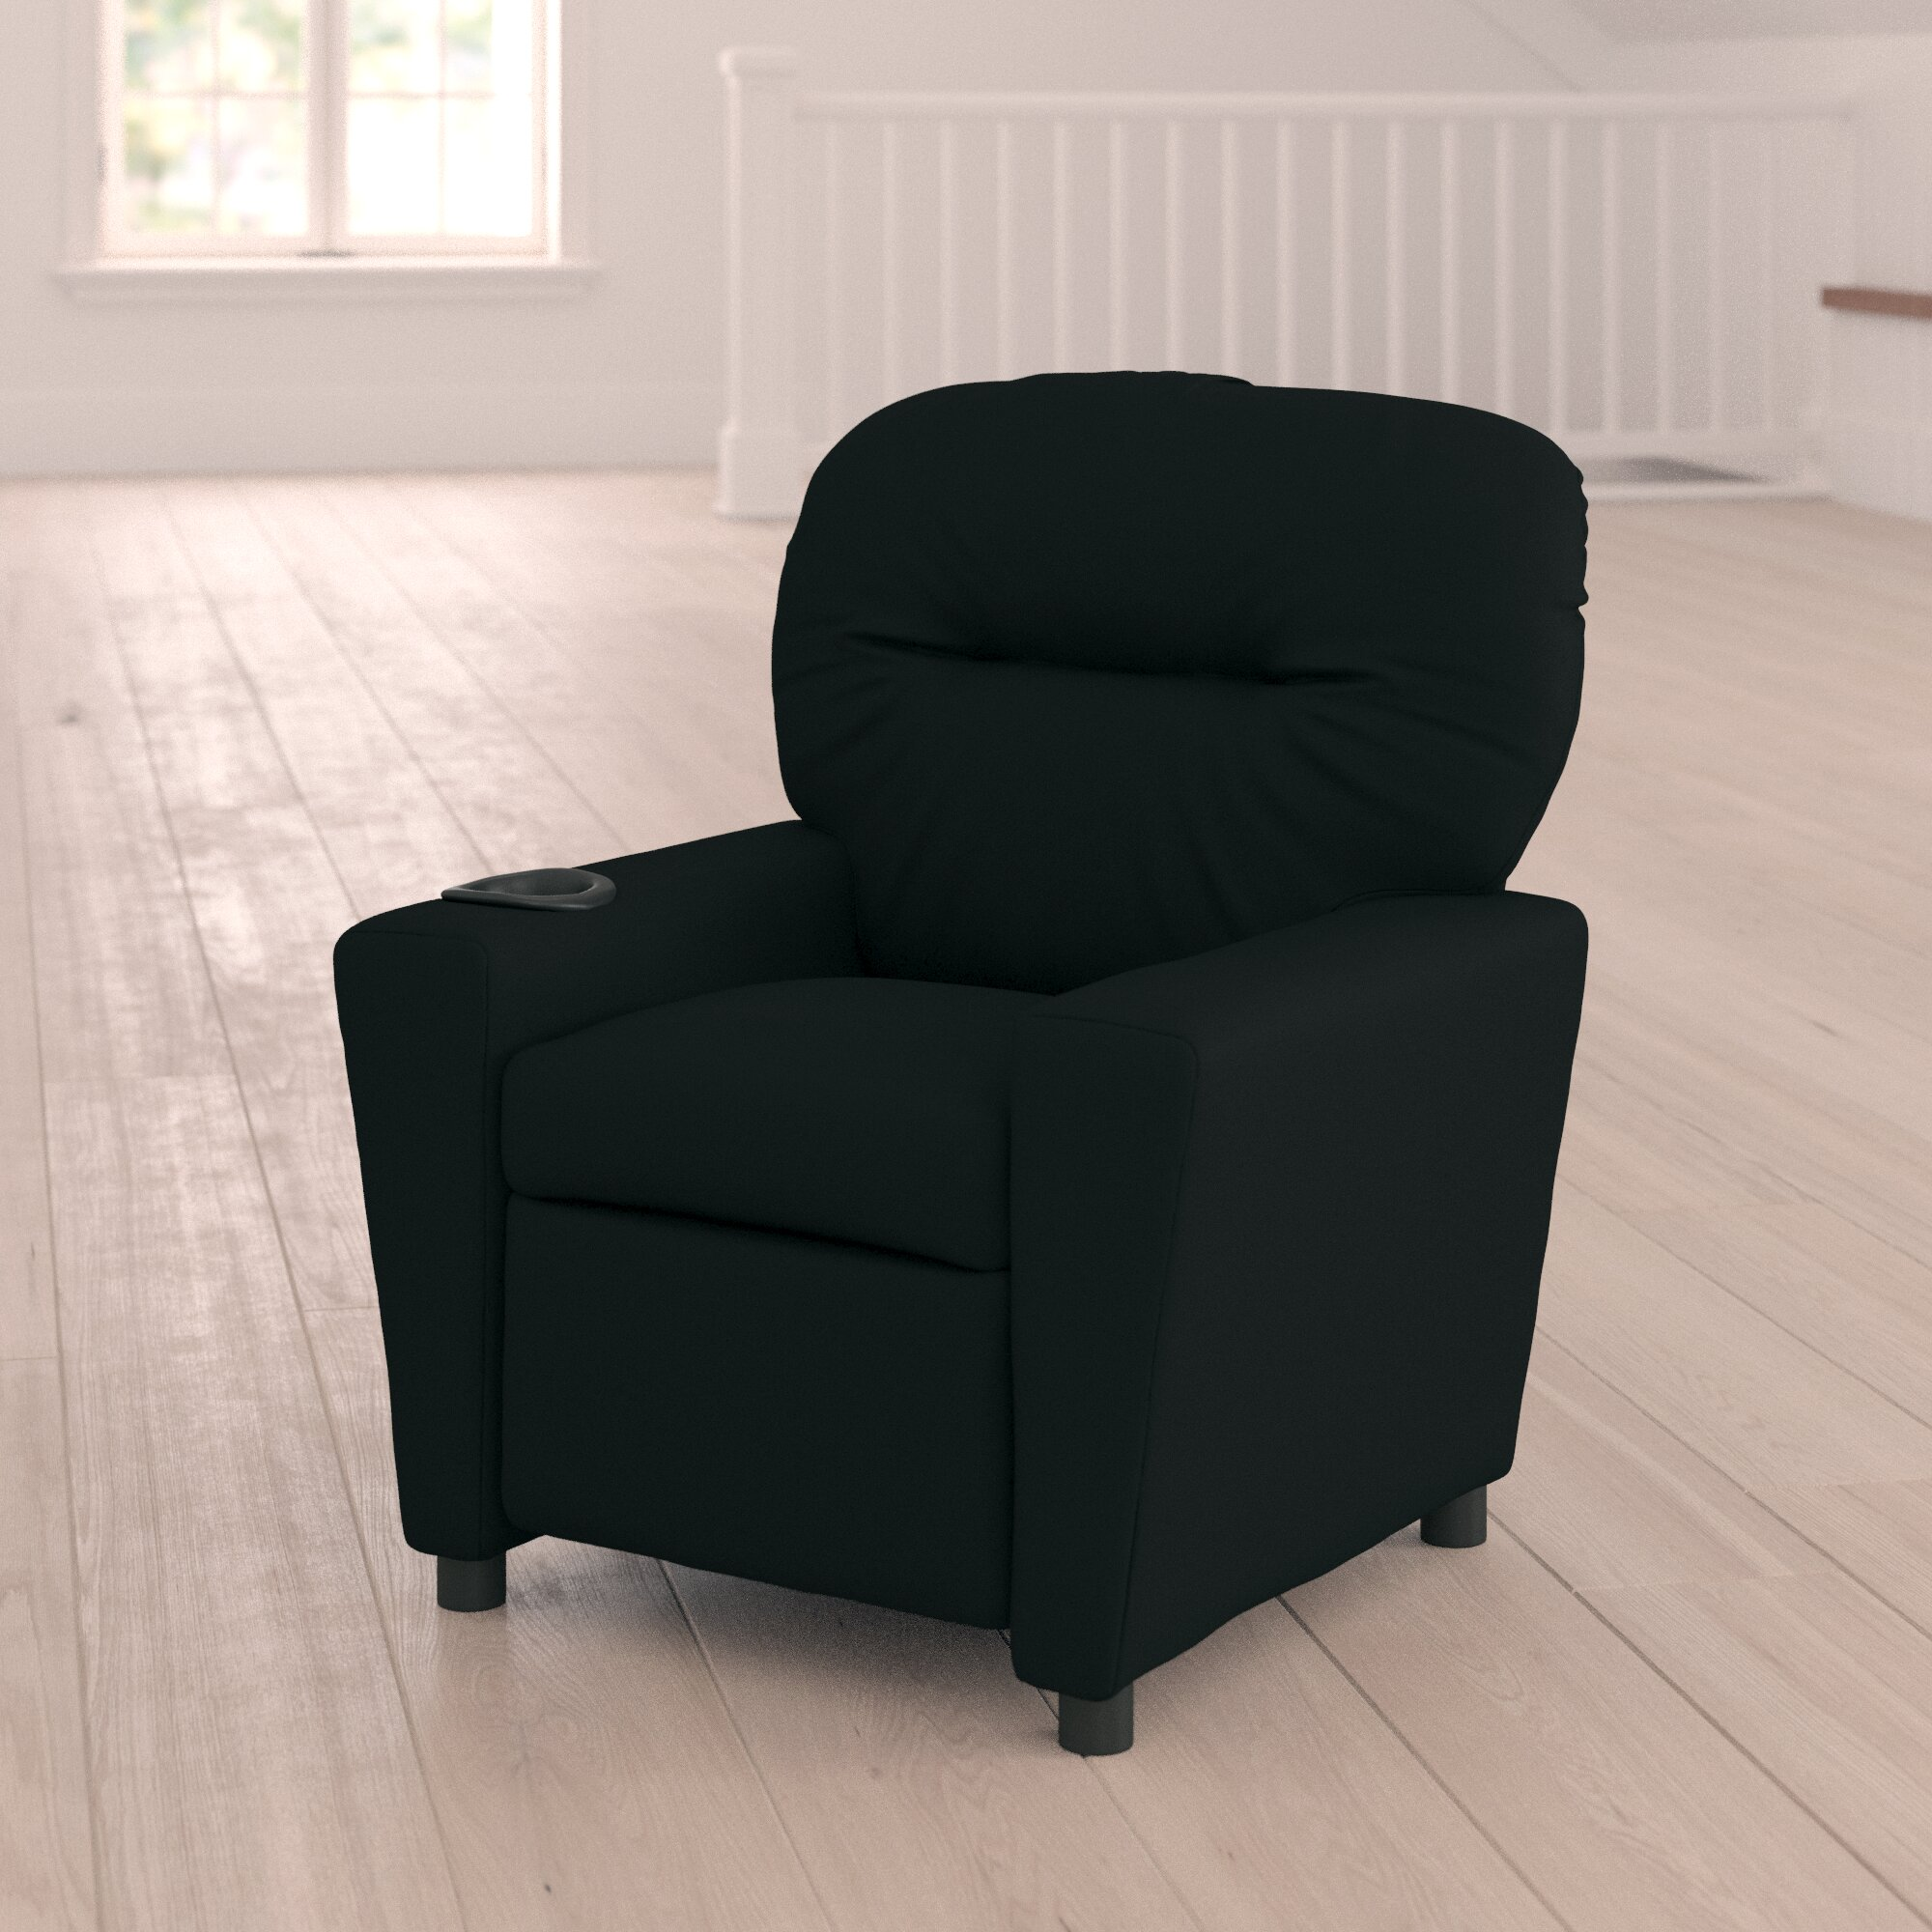 Blevins Kids Recliner and Ottoman with Cup Holder